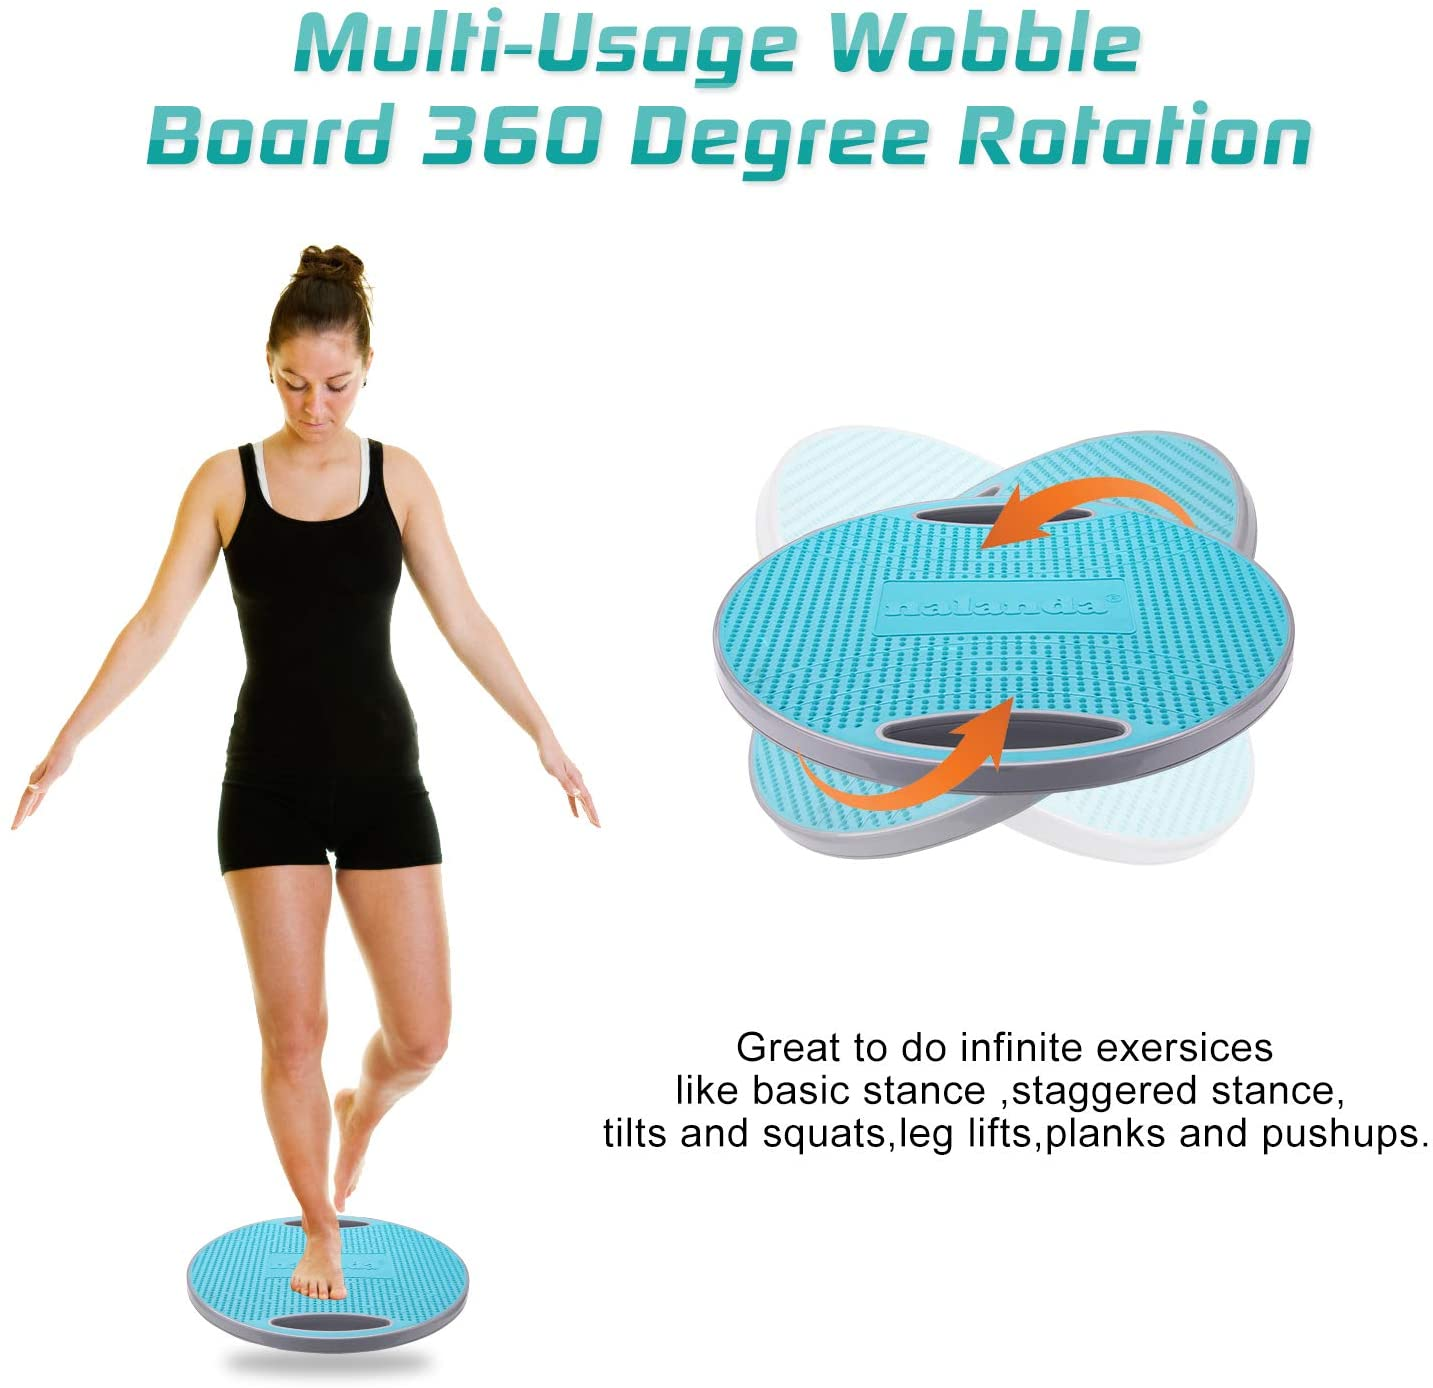 NALANDA Wobble Balance Board, Core Trainer for Balance Training and Exercising, Healthy Material Non-Skid TPE Bump Surface, Stability Board for Kids and Adults : Sports & Outdoors